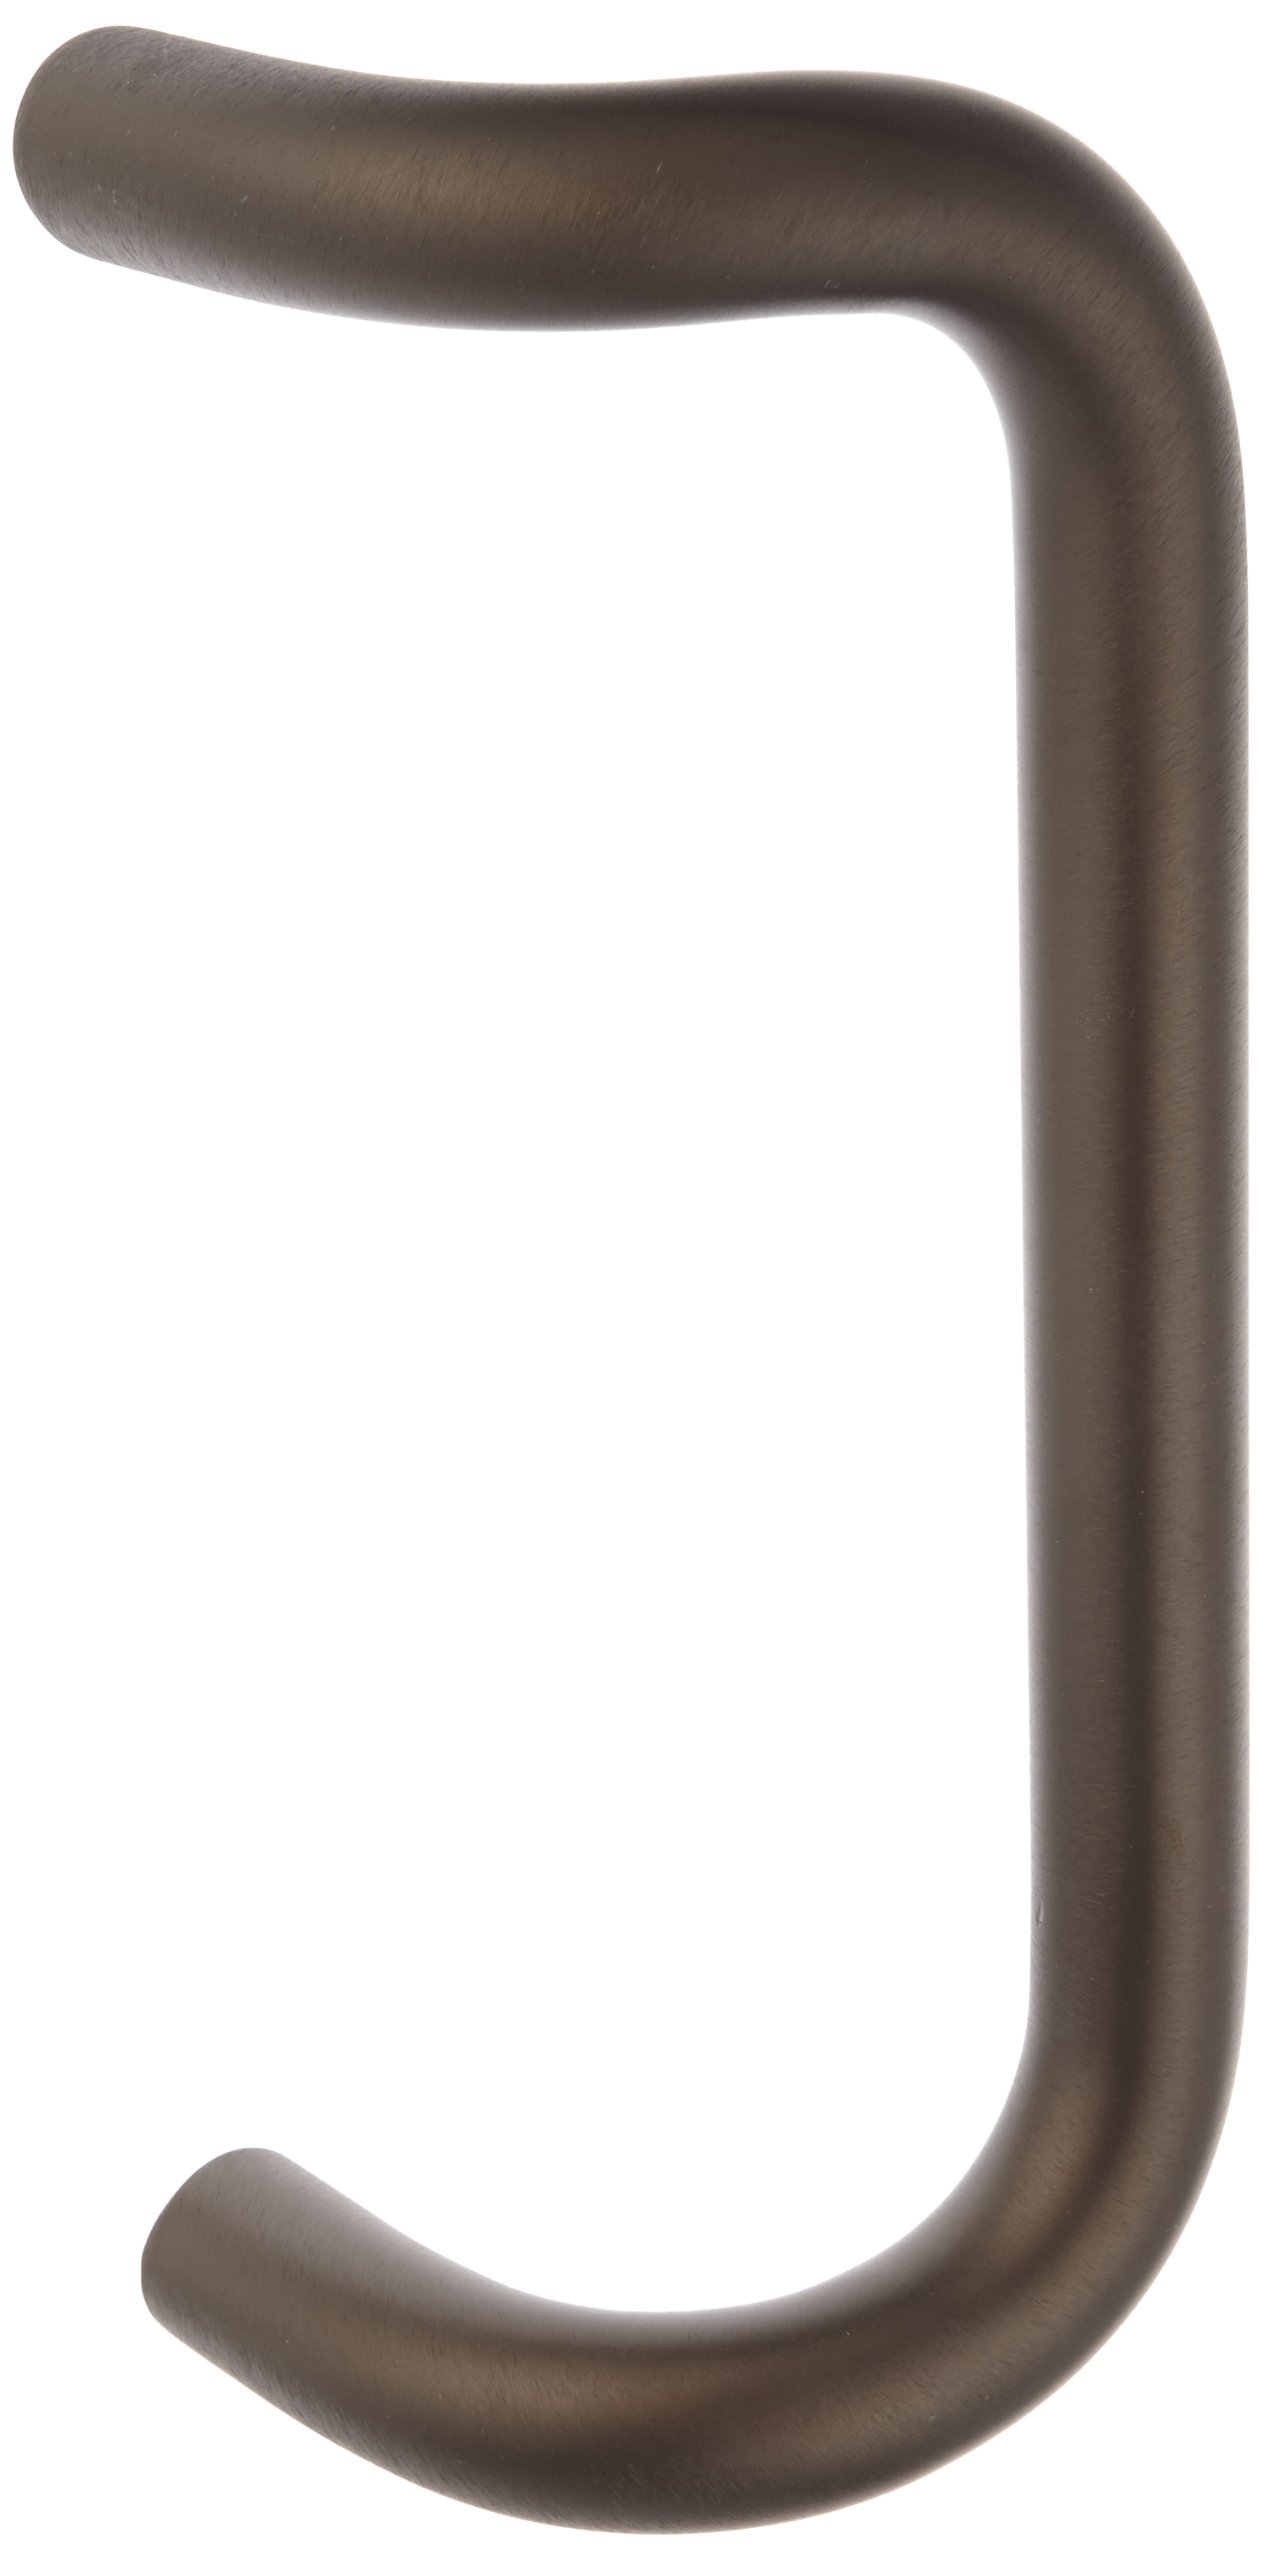 Rockwood BF157.313 Aluminum 90-Degree Offset Door Pull, 1'' Diameter x 10'' Center-to-Center, Through Bolt Mounting for 1-3/4'' Door, Dark Bronze Anodized Finish